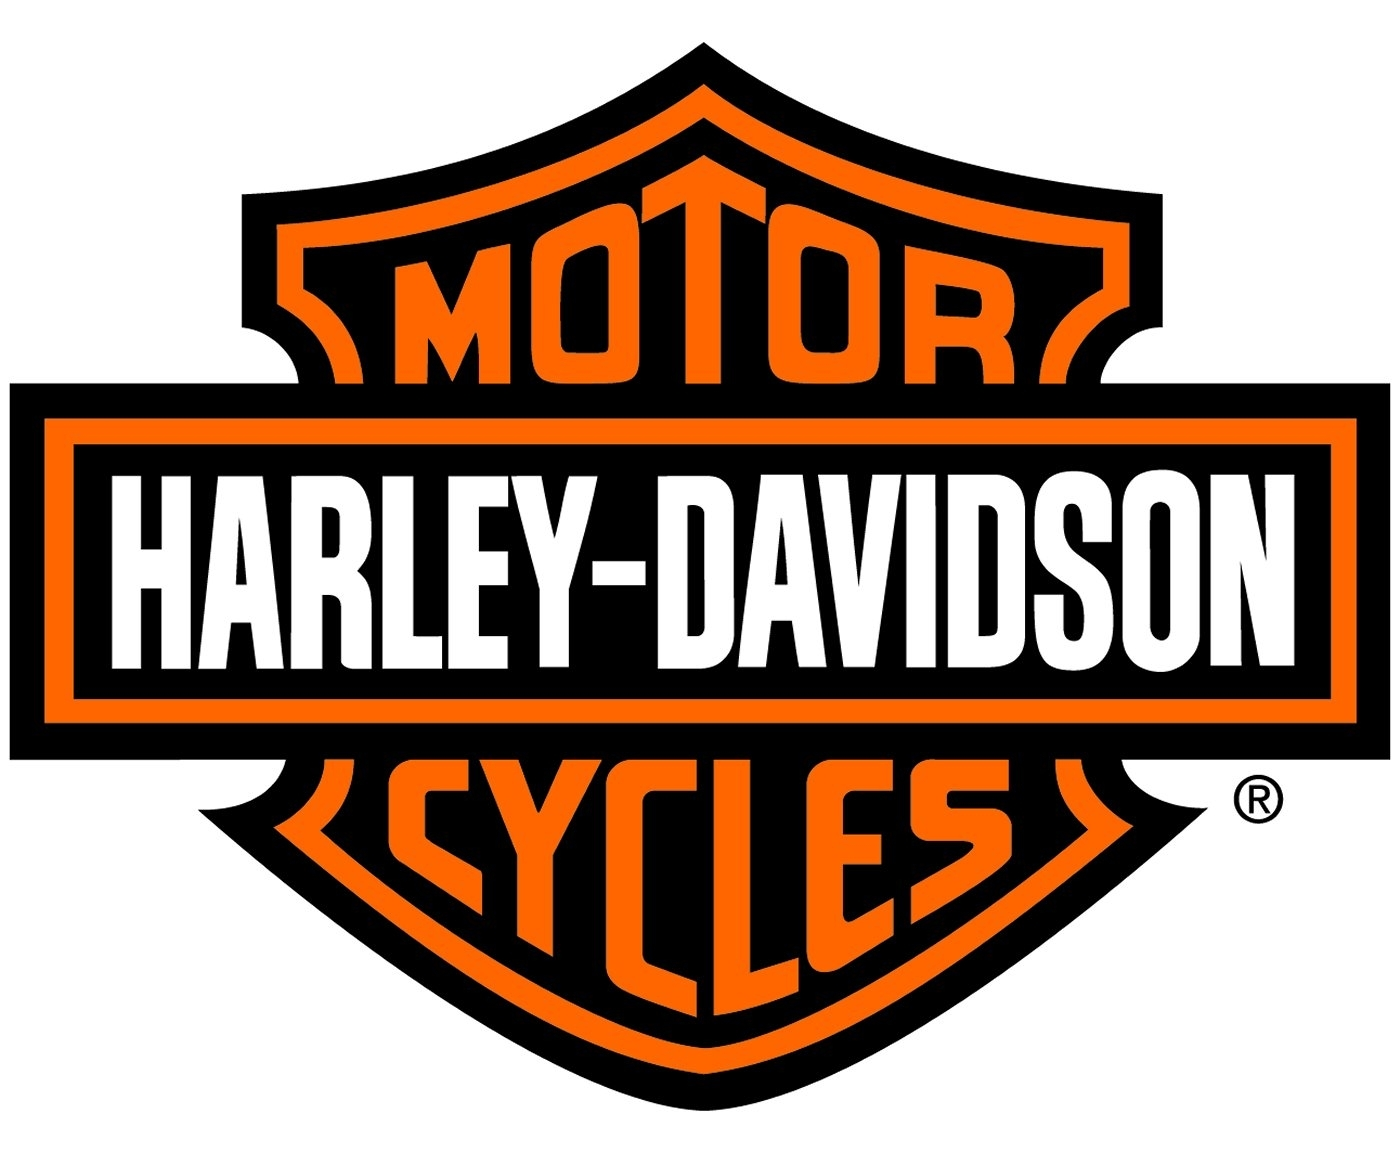 10 Best Harley Davidson Logo Pictures FULL HD 1920×1080 For PC Desktop